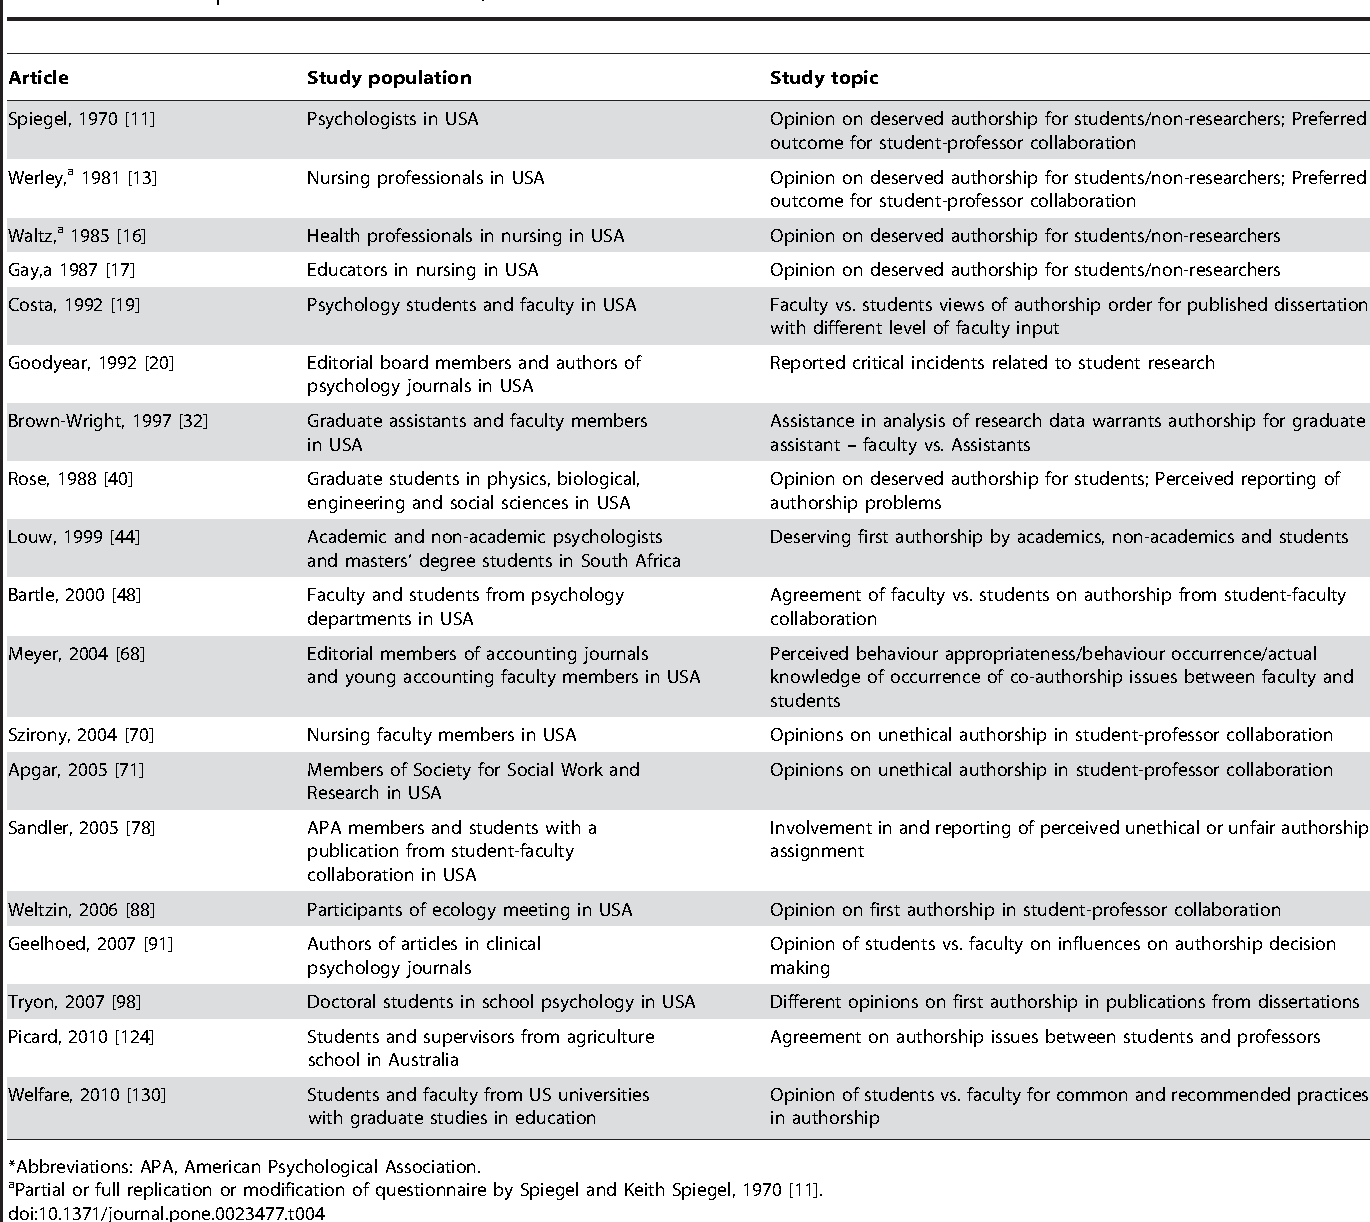 Table 4. Authorship in researcher – student/non-researcher collaborations*.